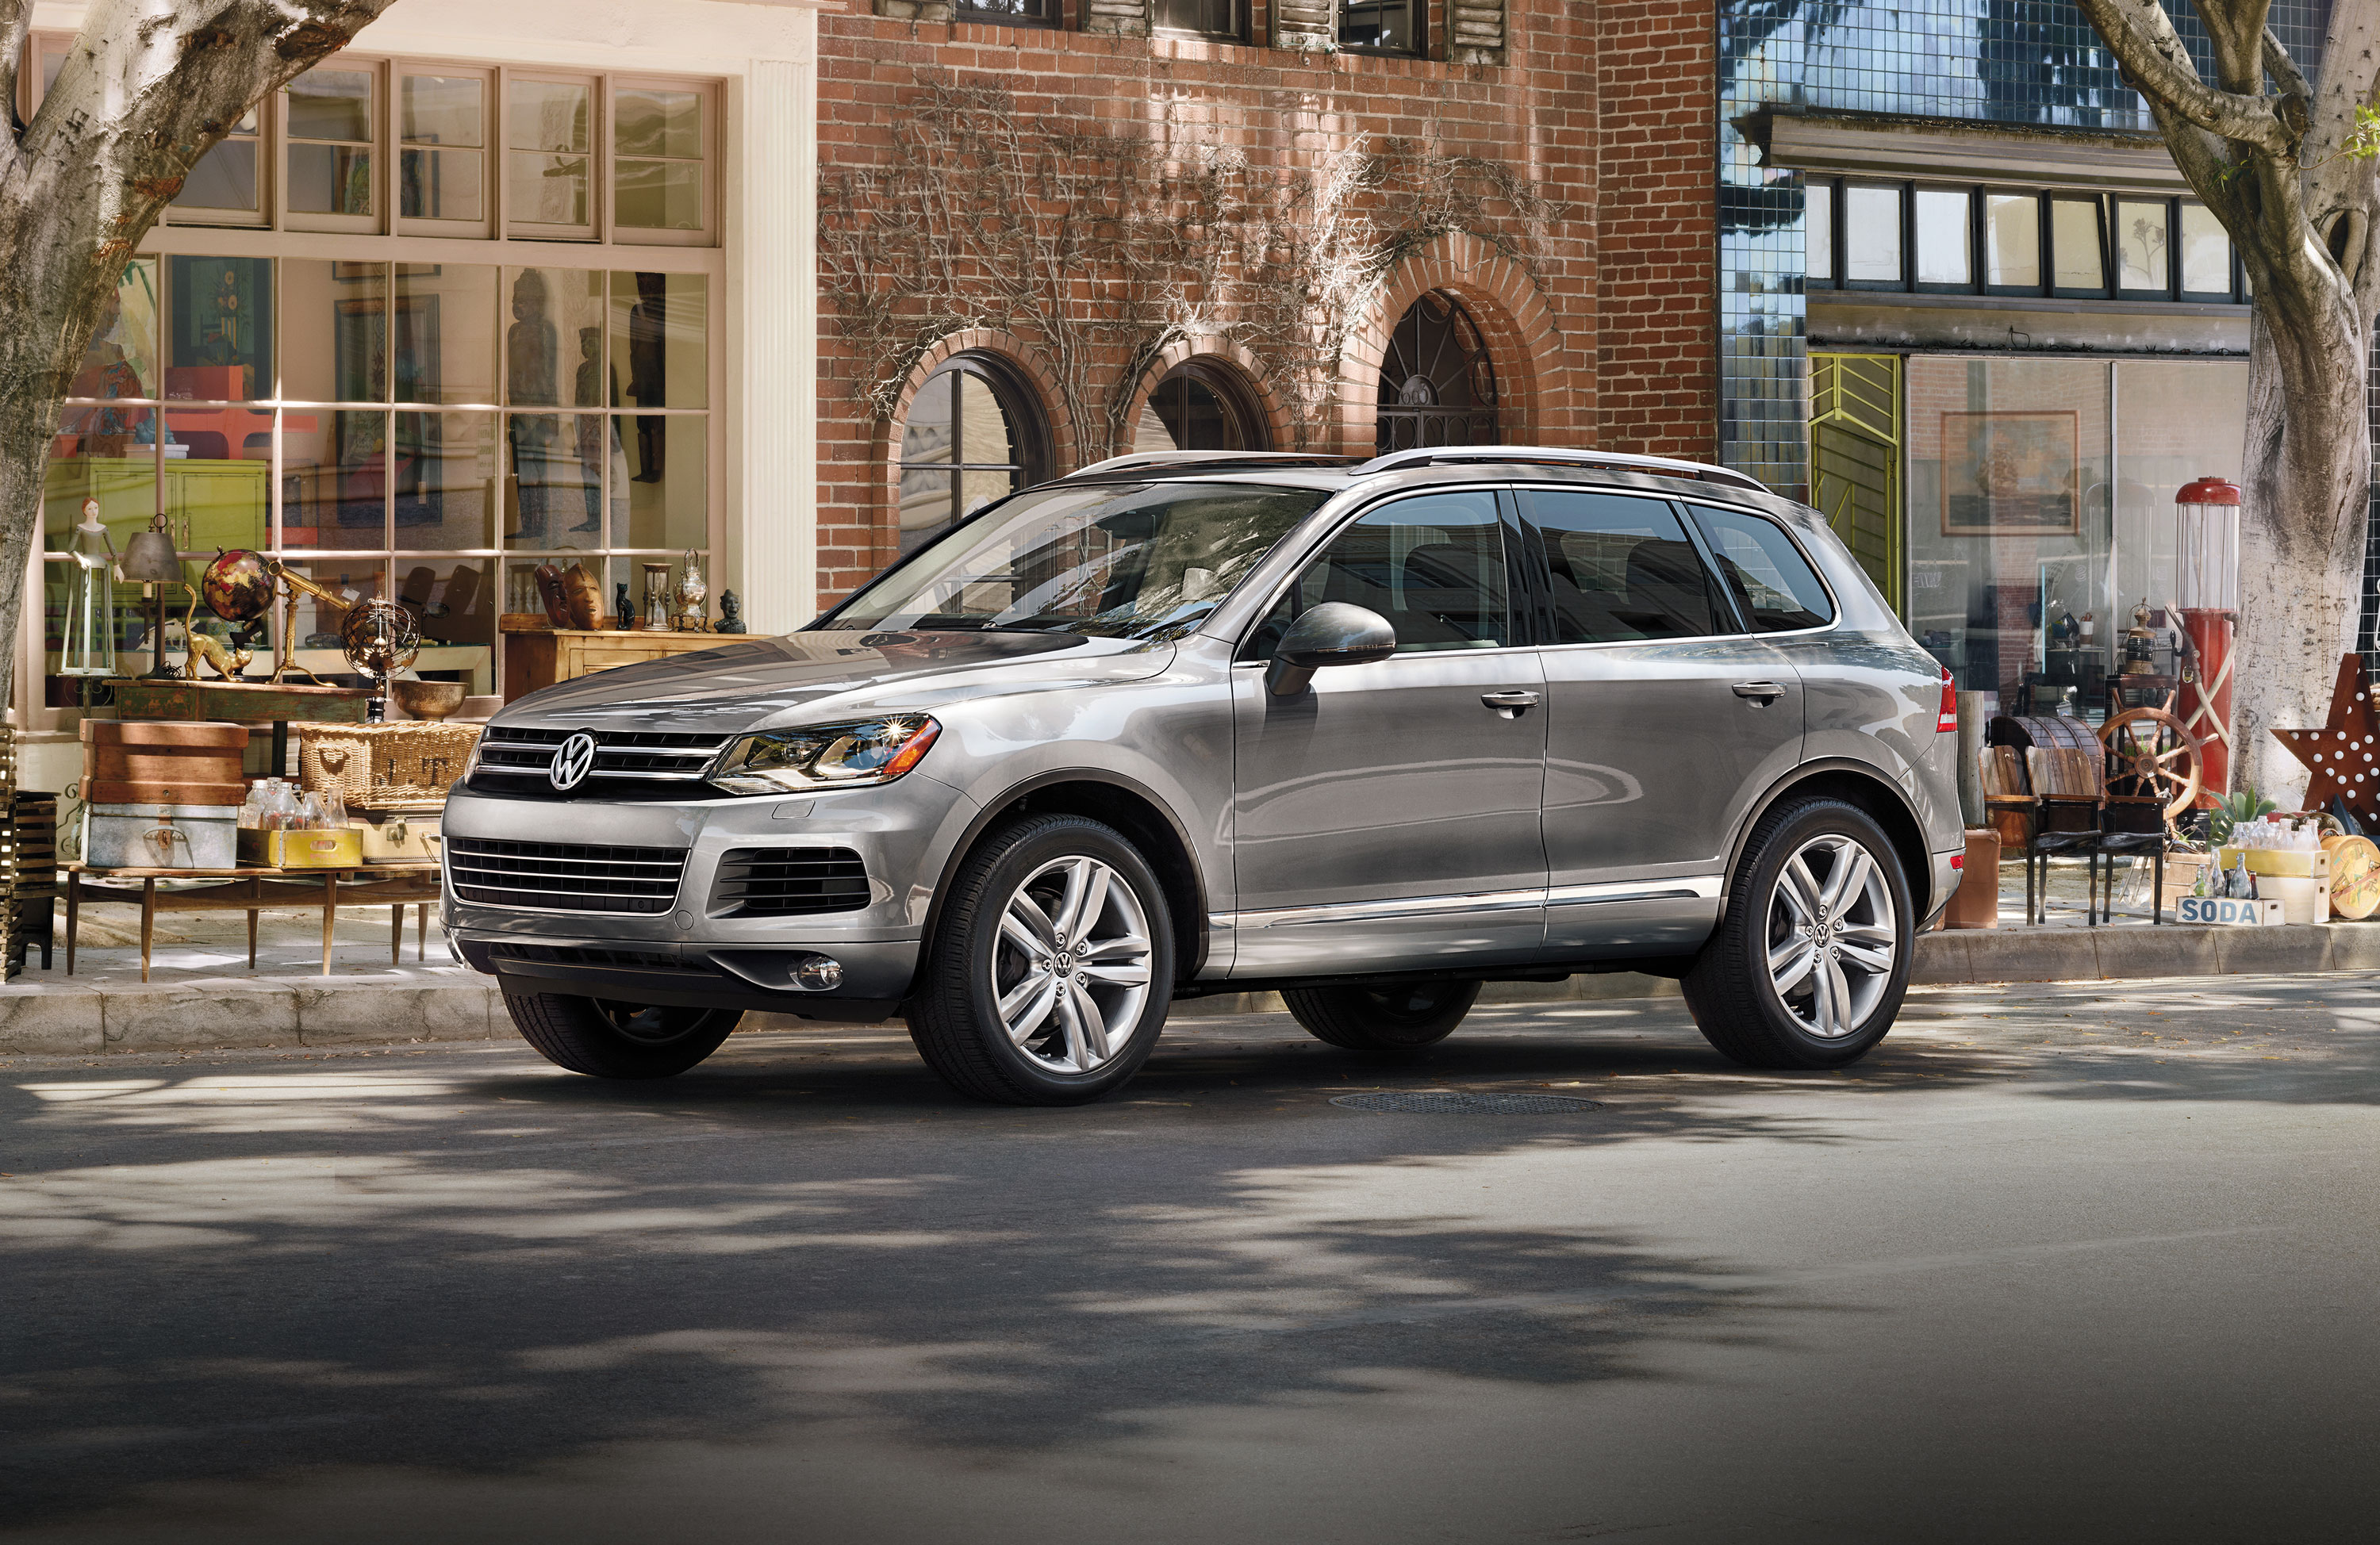 Volkswagen discontinues Touareg SUV in India